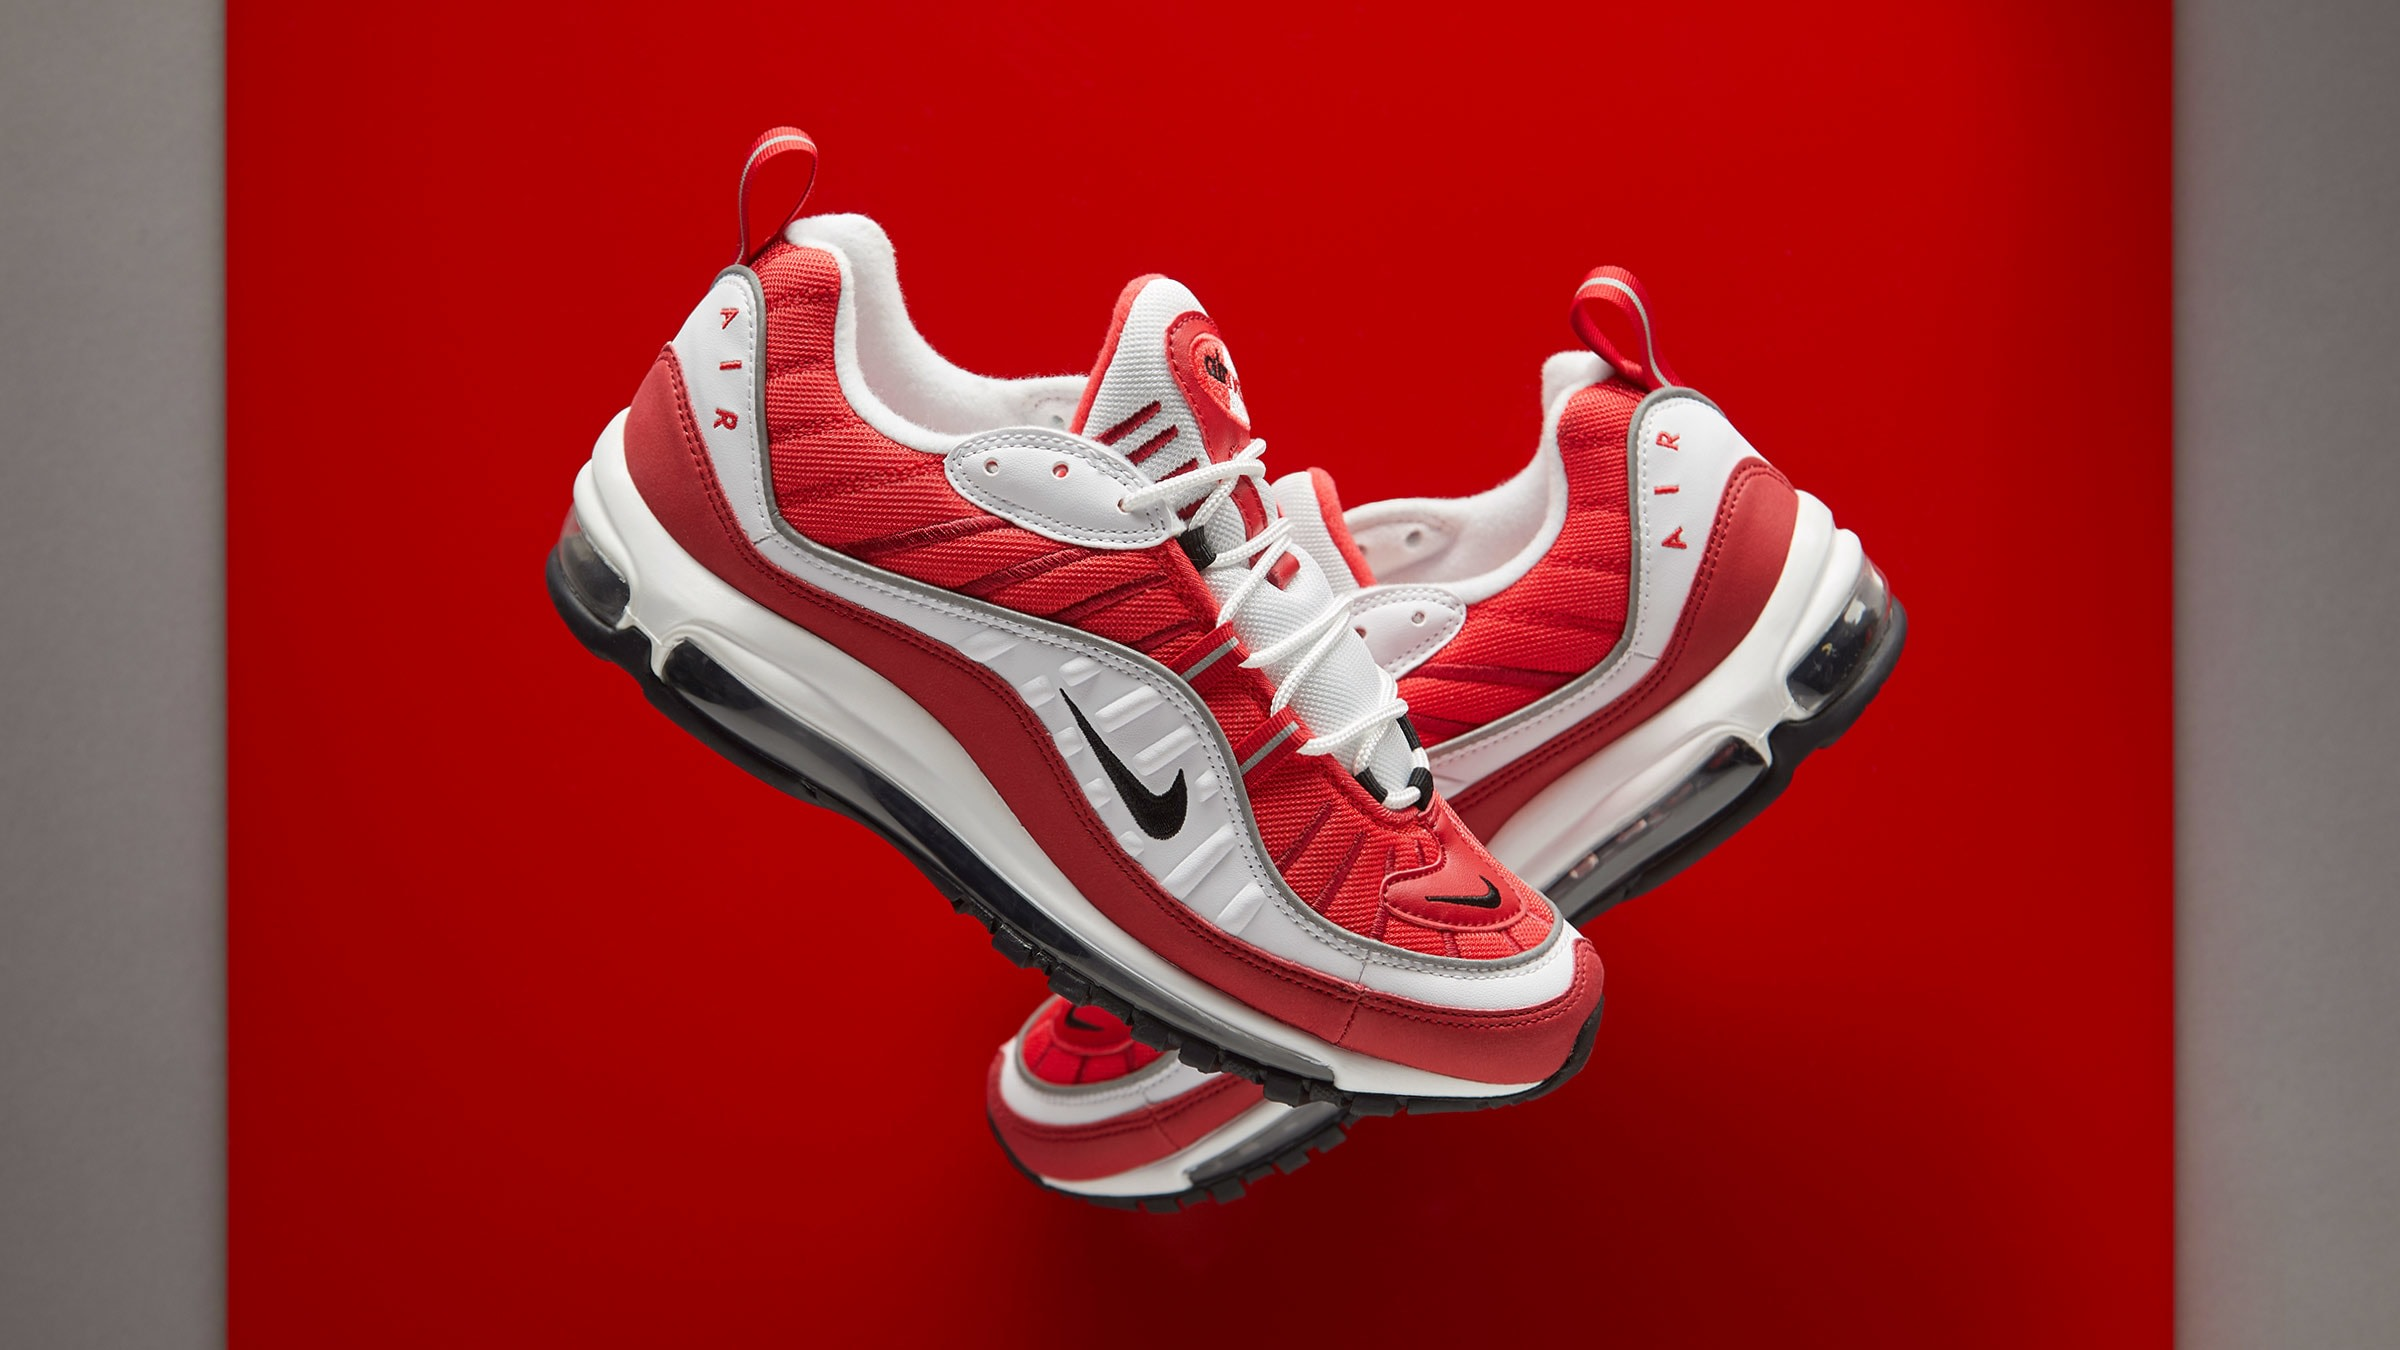 END. Features | Nike W Air Max 98 'Gym Red' Register Now